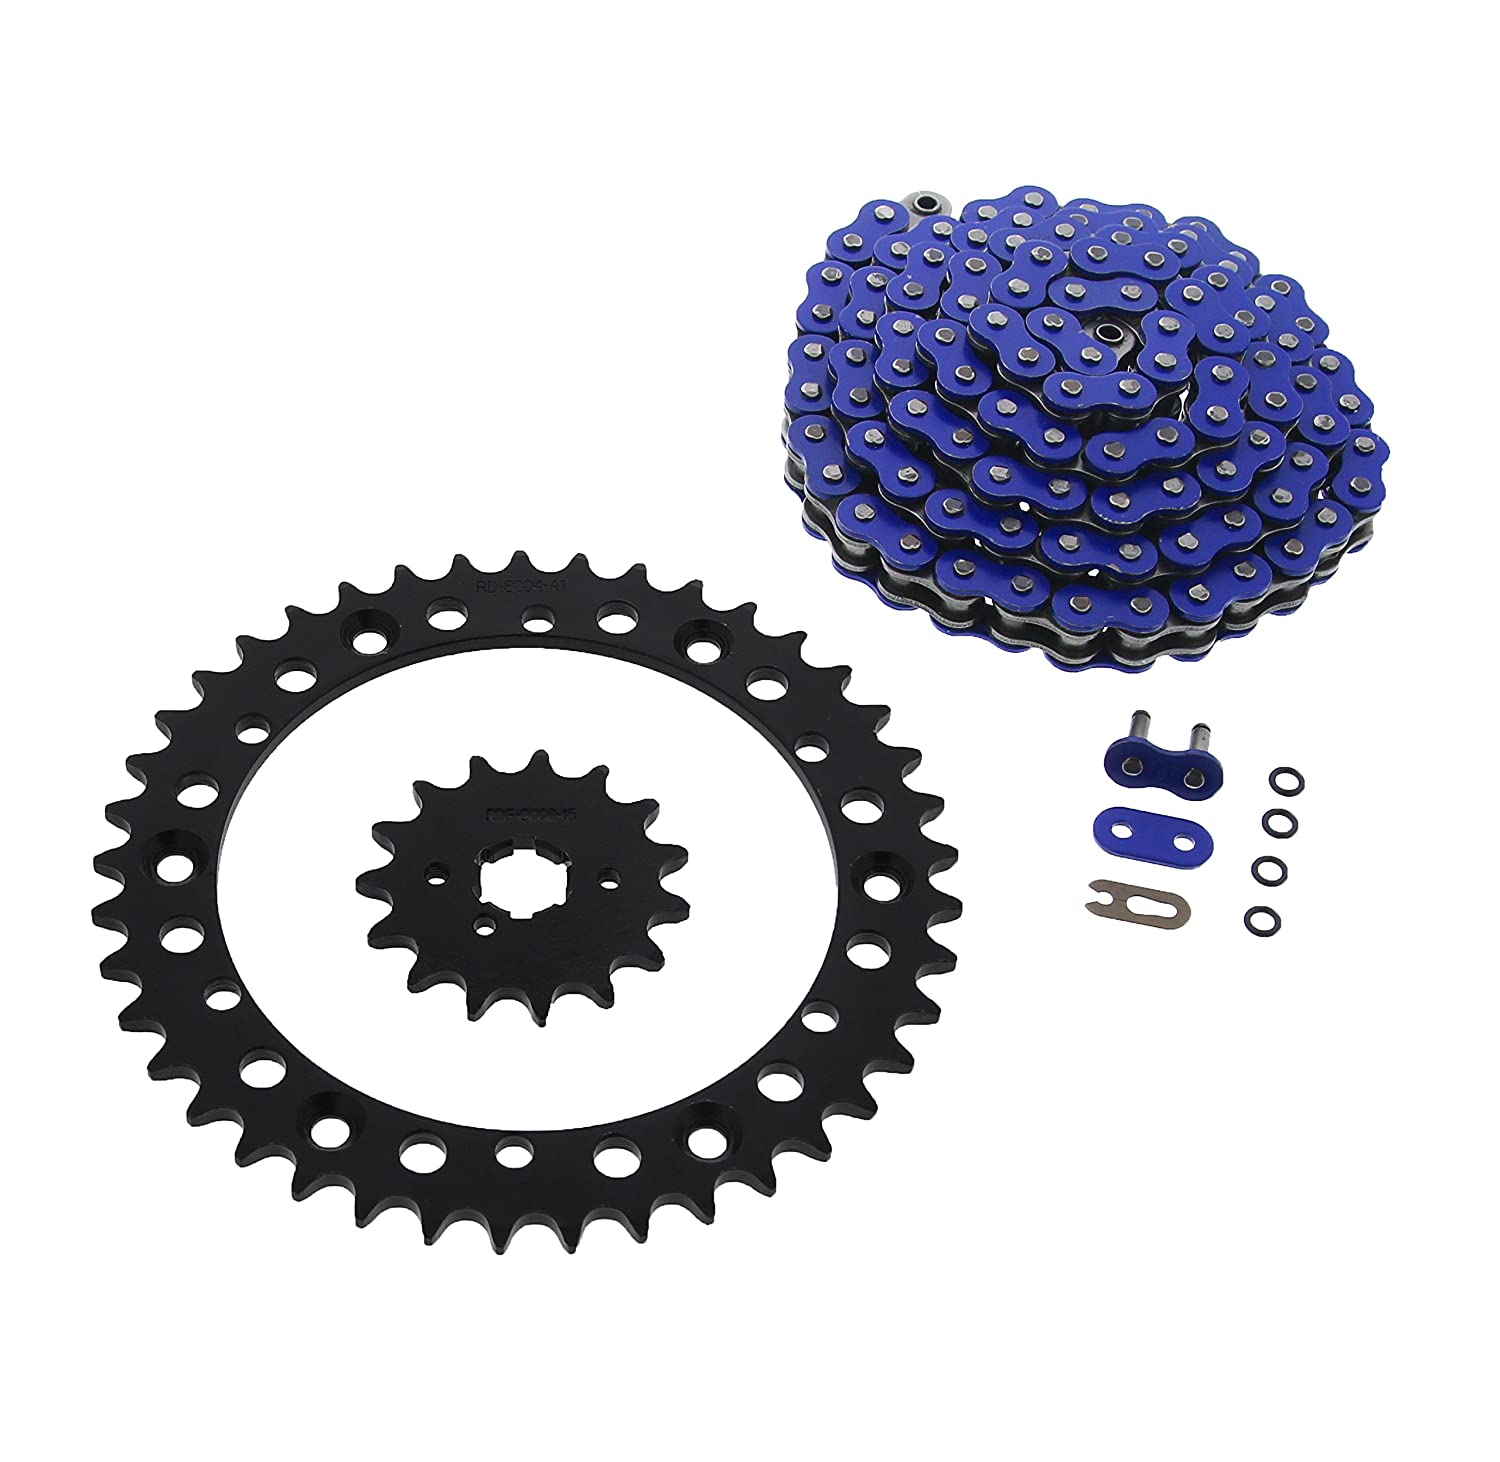 01-2004 Yamaha YFM350 350 Warrior Blue O-Ring Chain & Black Sprocket 15/41 102L Race-Driven